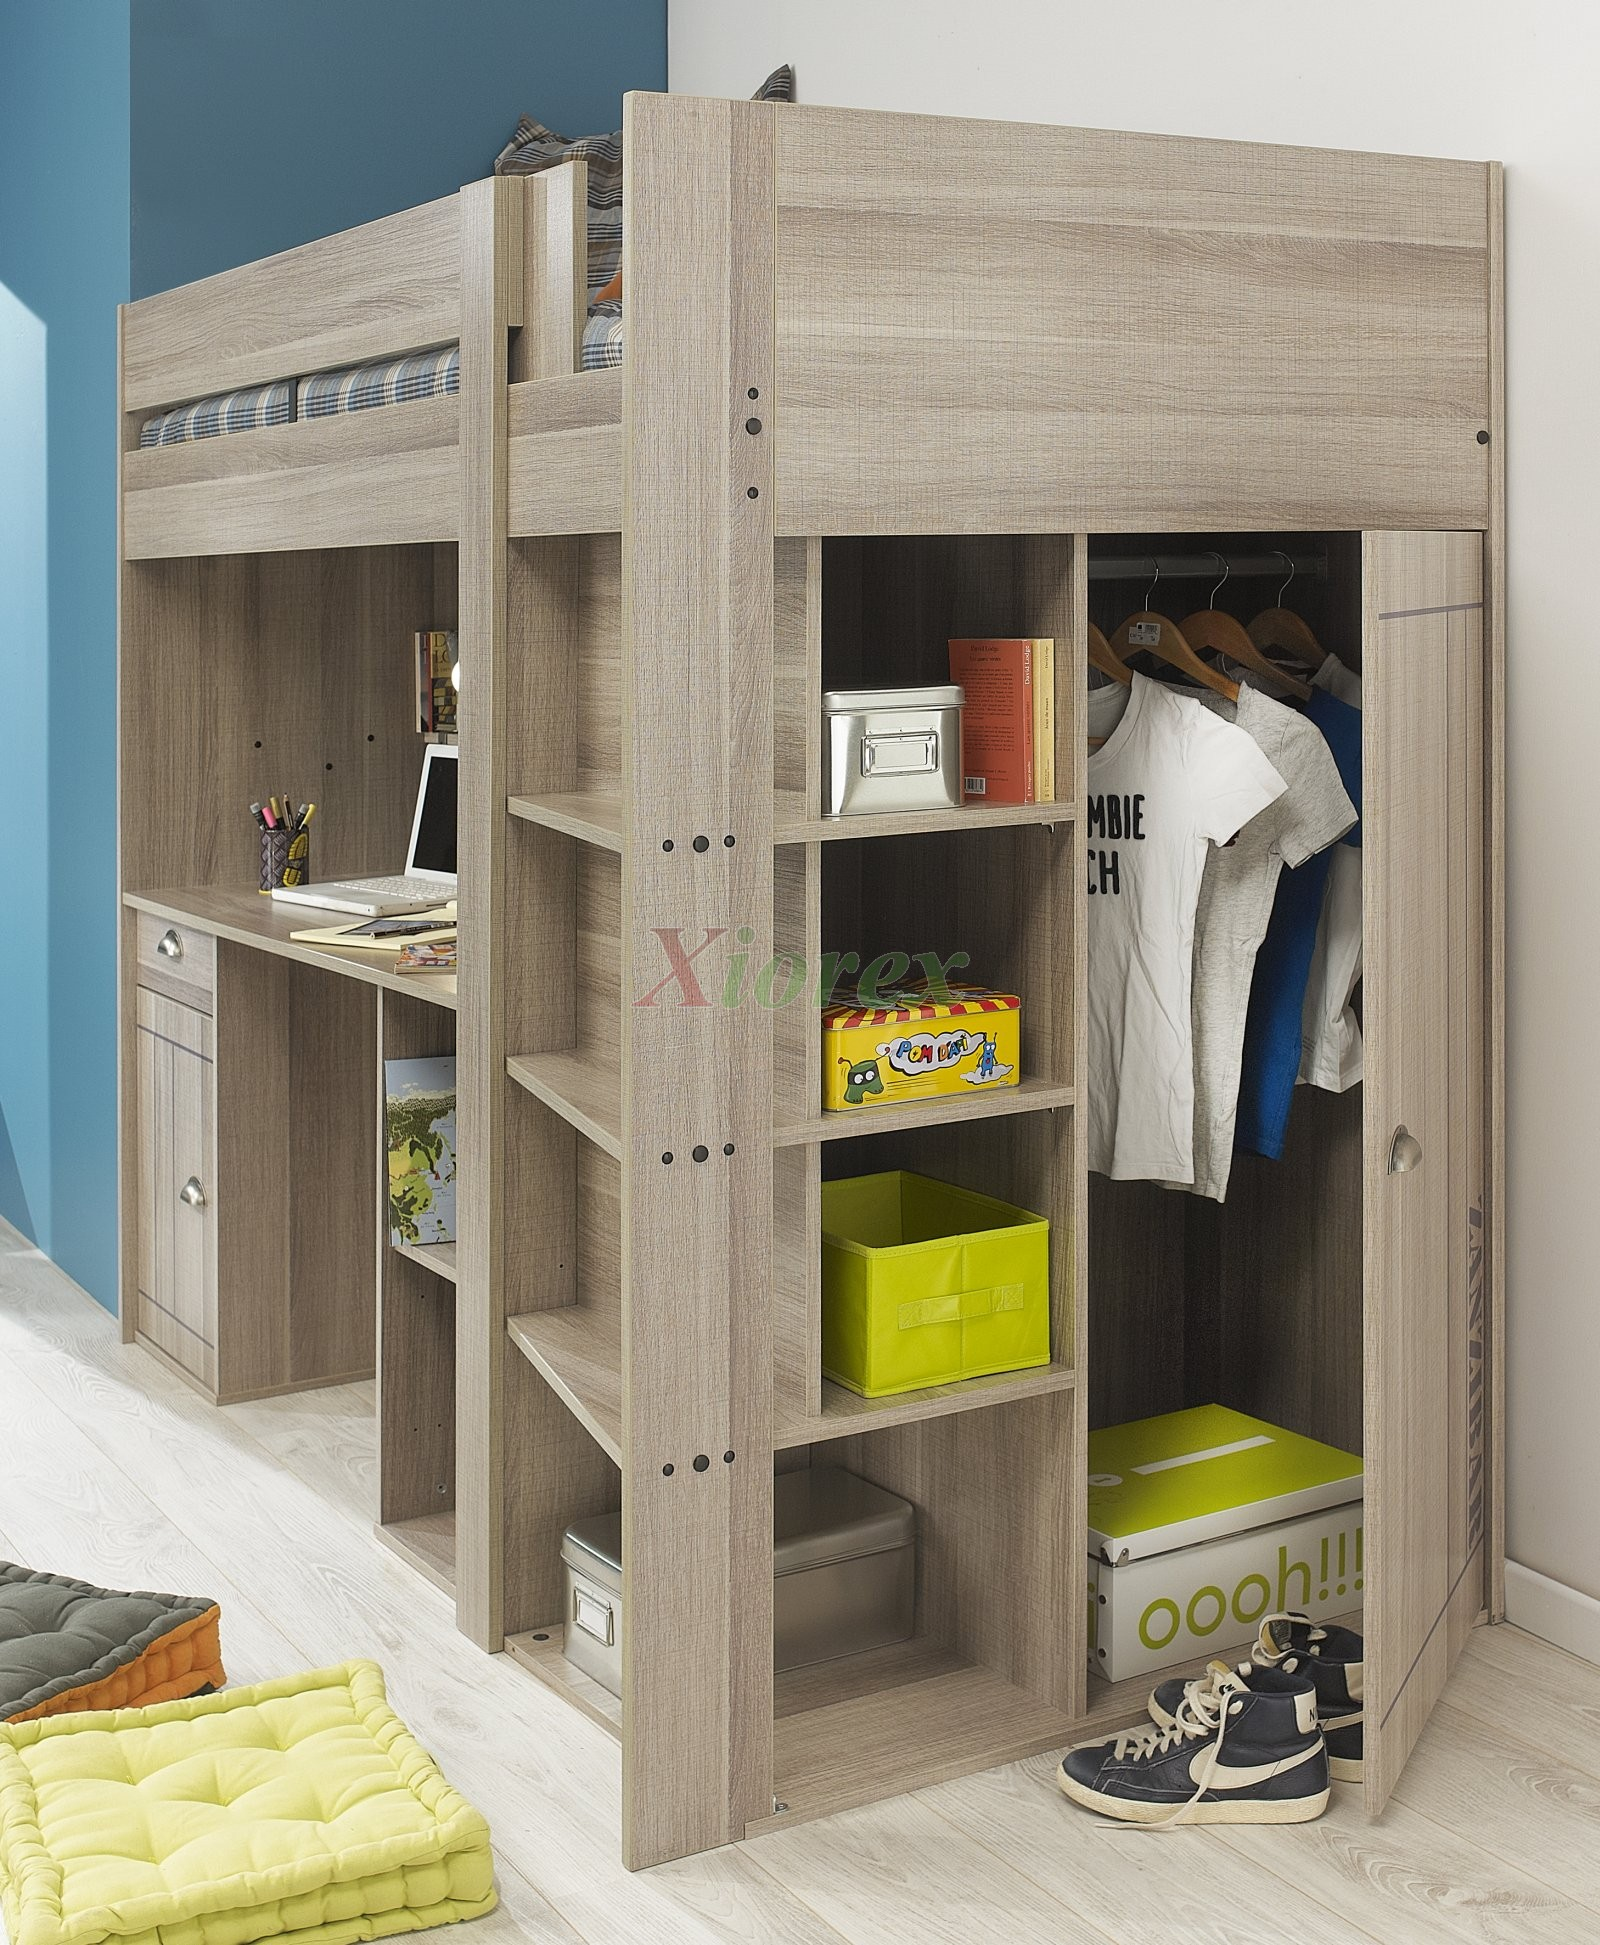 Gami Largo Loft Beds For S Canada With Desk And Closet Xiorex